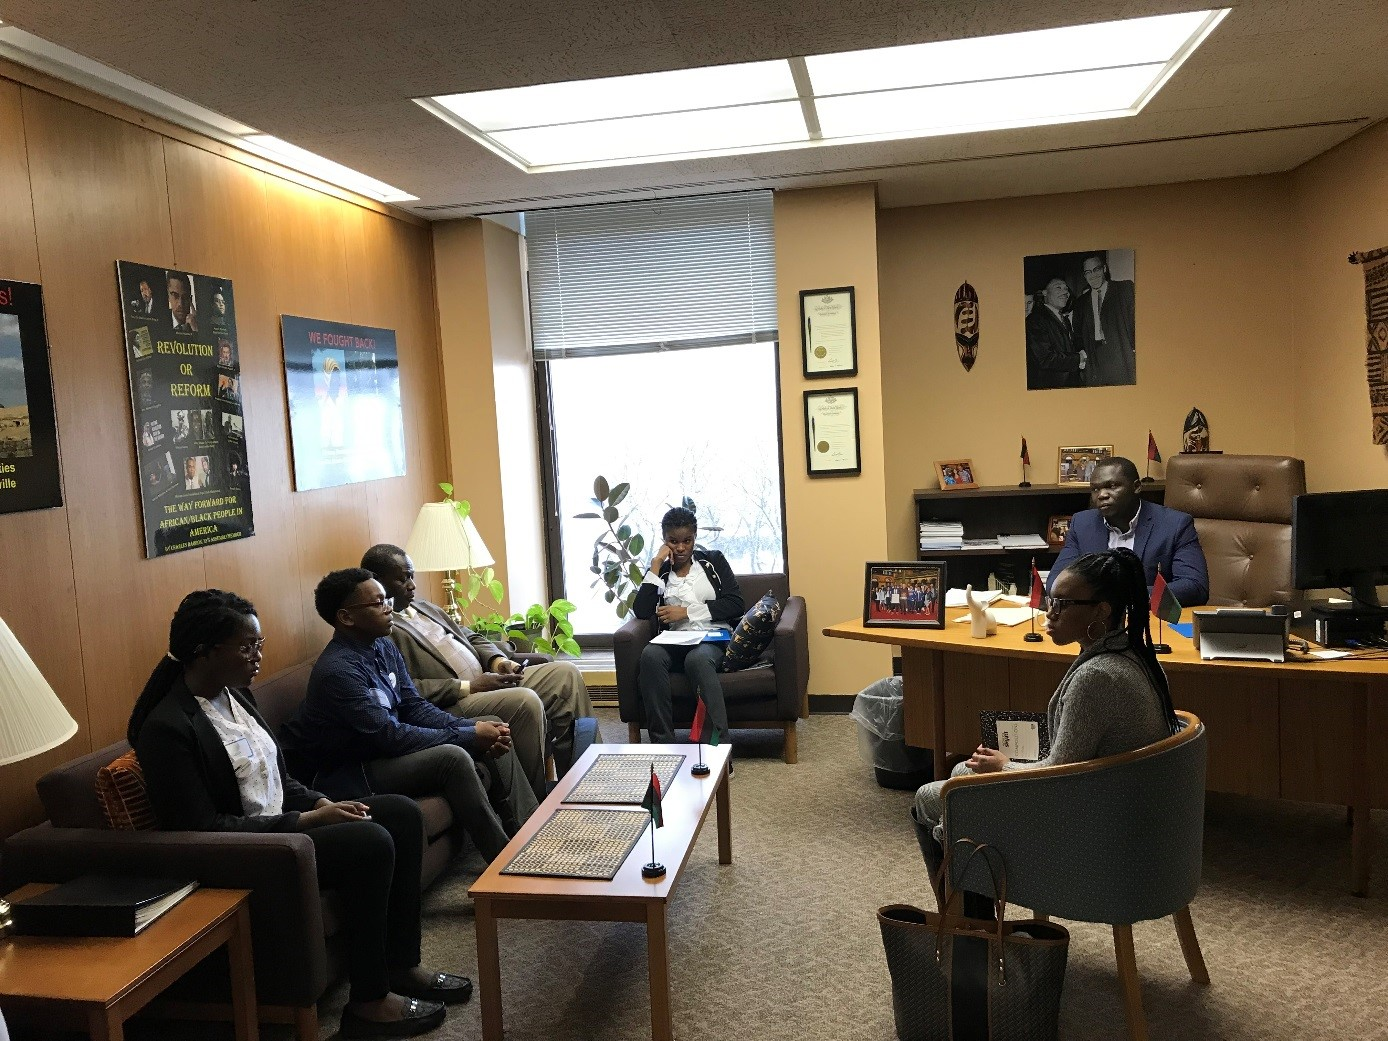 Students from Clara Barton High School for Health Professionals met with a staff member from Assemblyman Charles Barron's office to support efforts around AP credit.